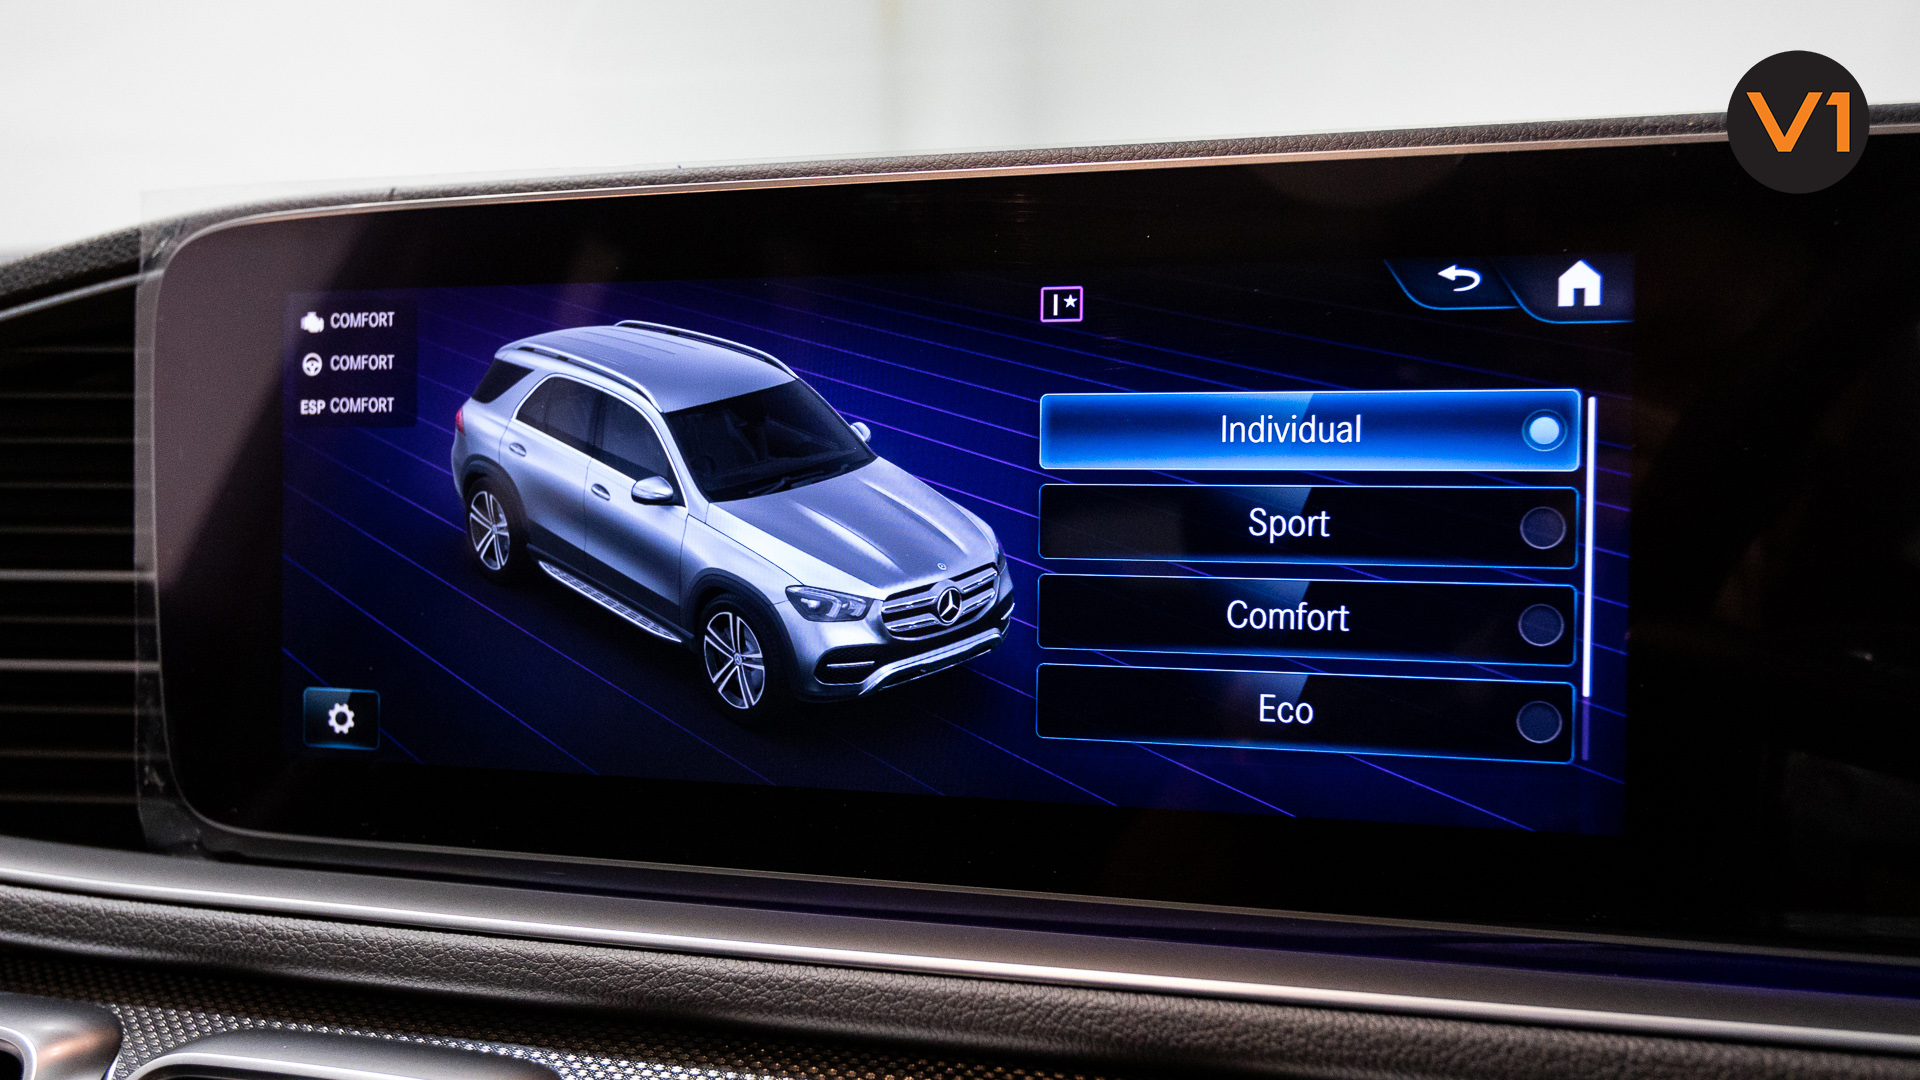 MERCEDES-BENZ GLE450 AMG 4MATIC LUXURY - Driver Mode Options